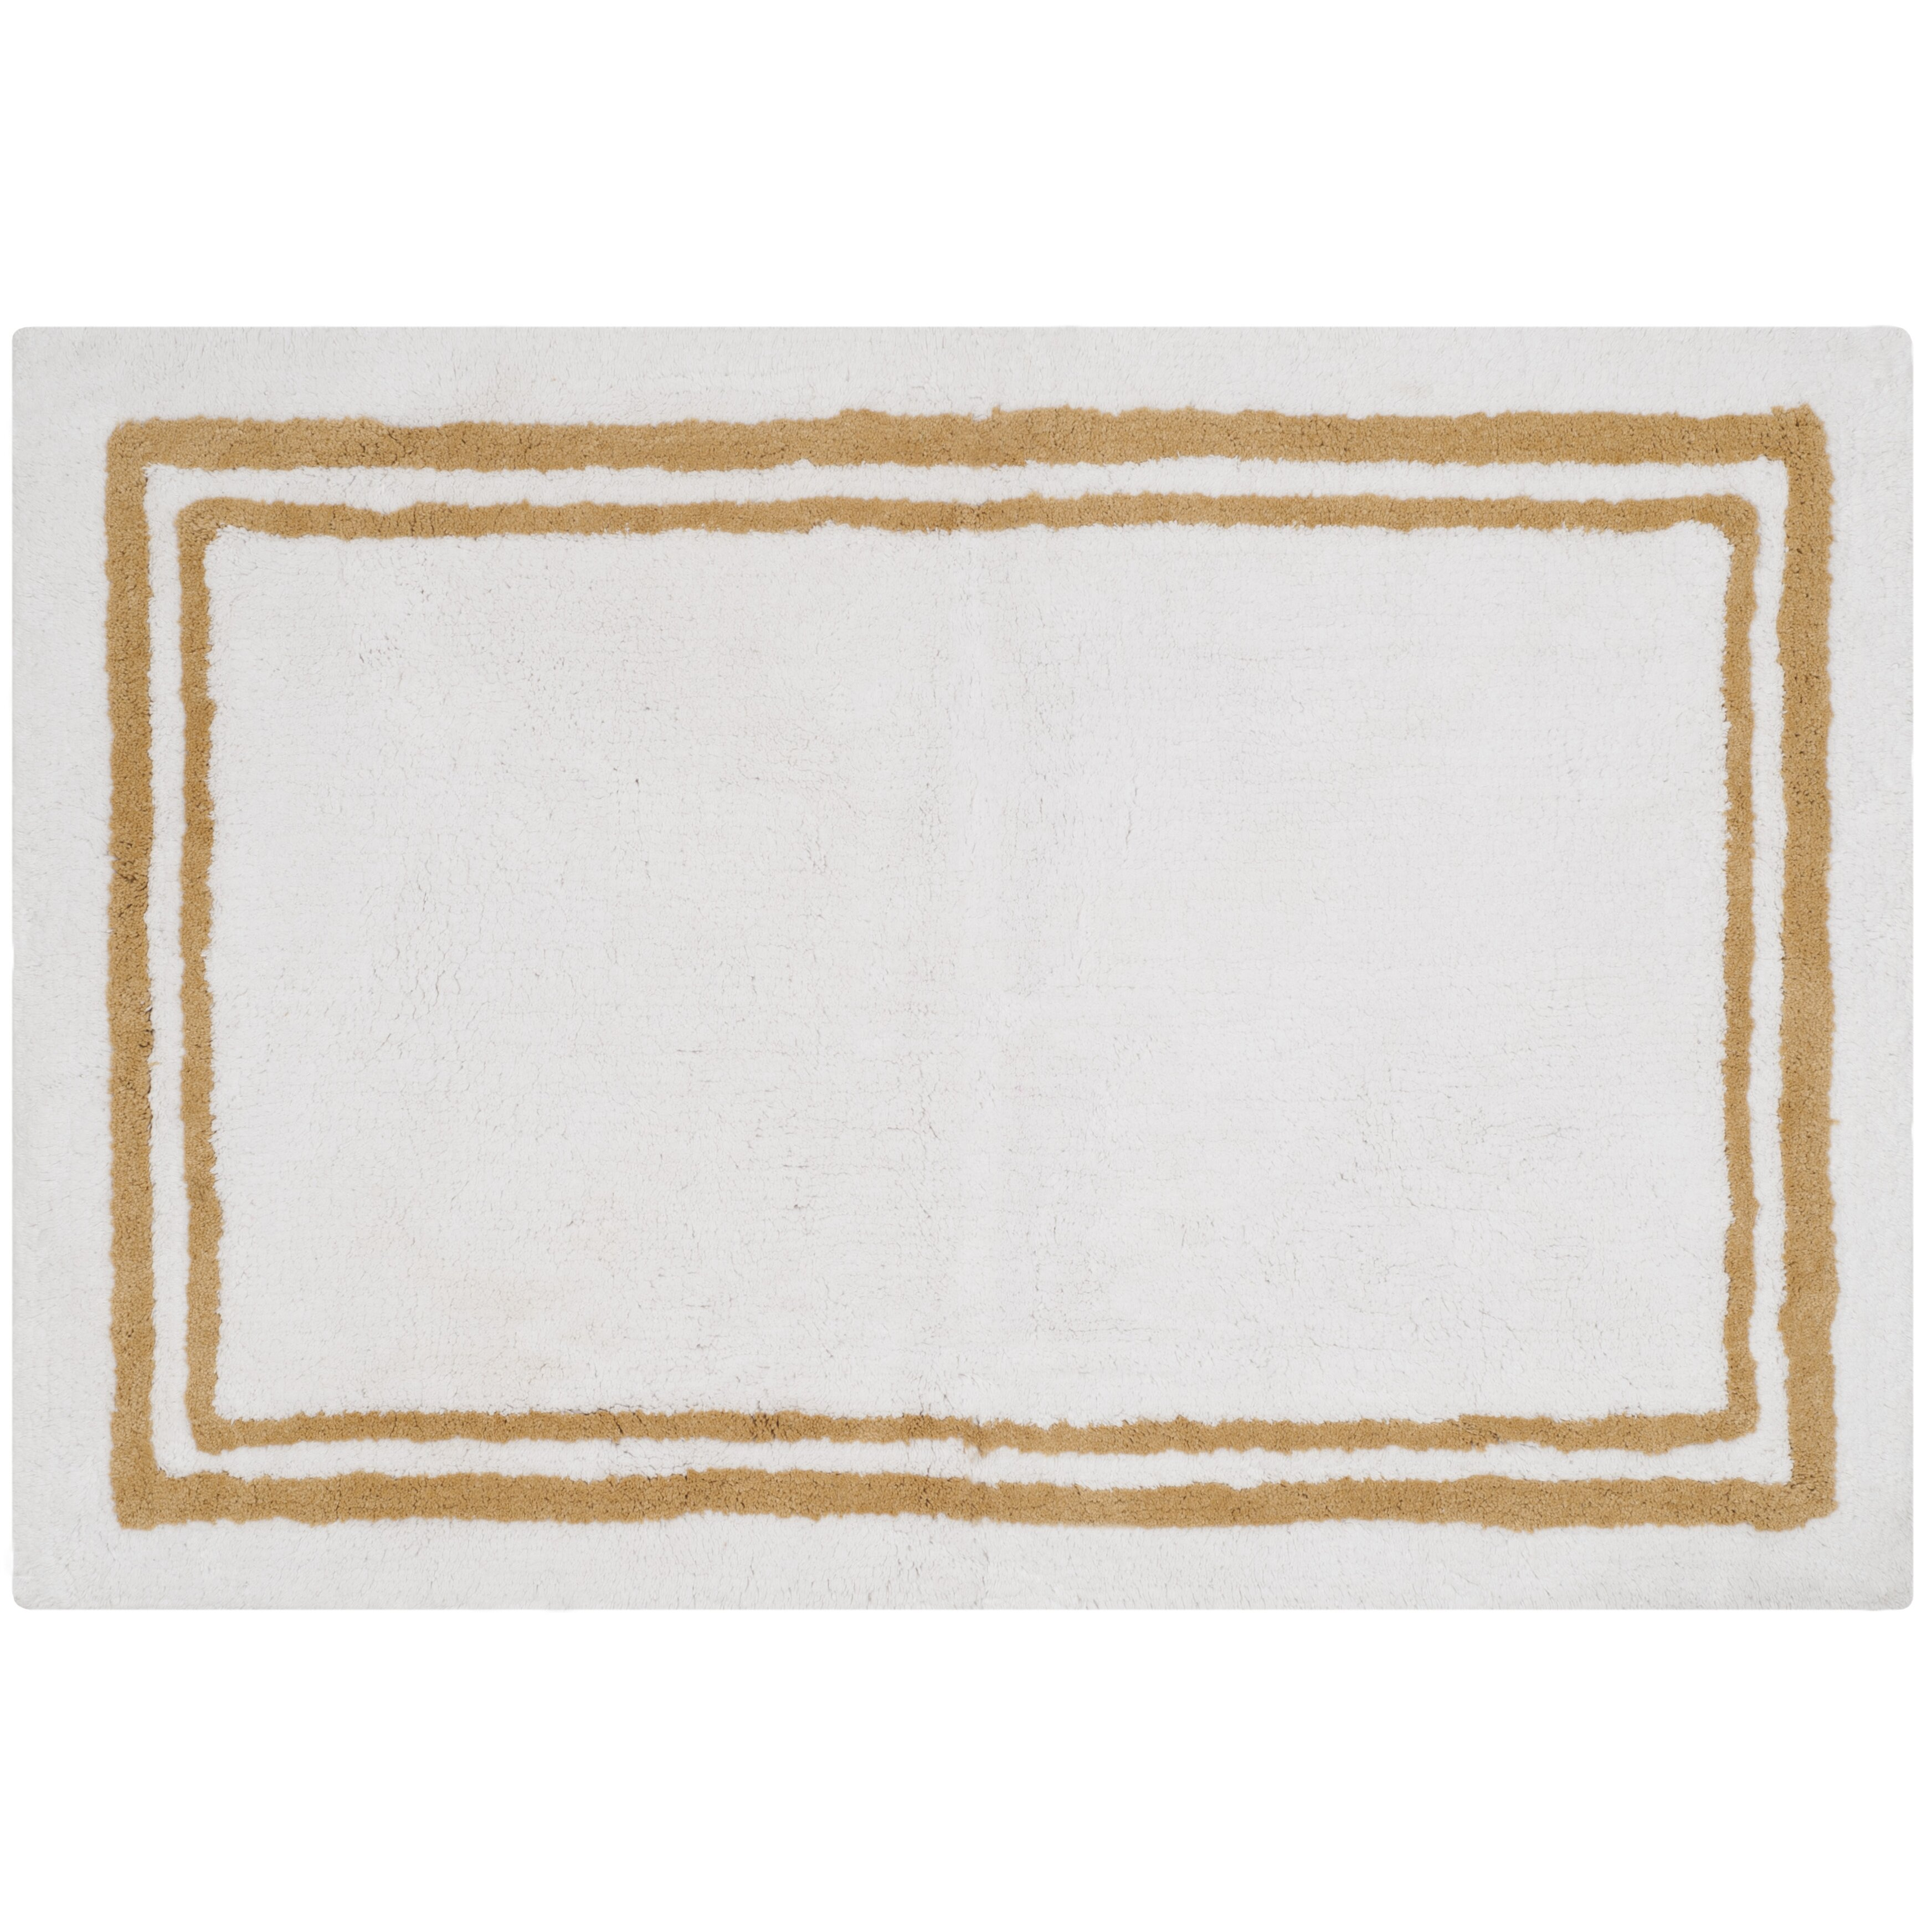 Safavieh plush master bath beige area rug wayfair for Master bathroom rugs